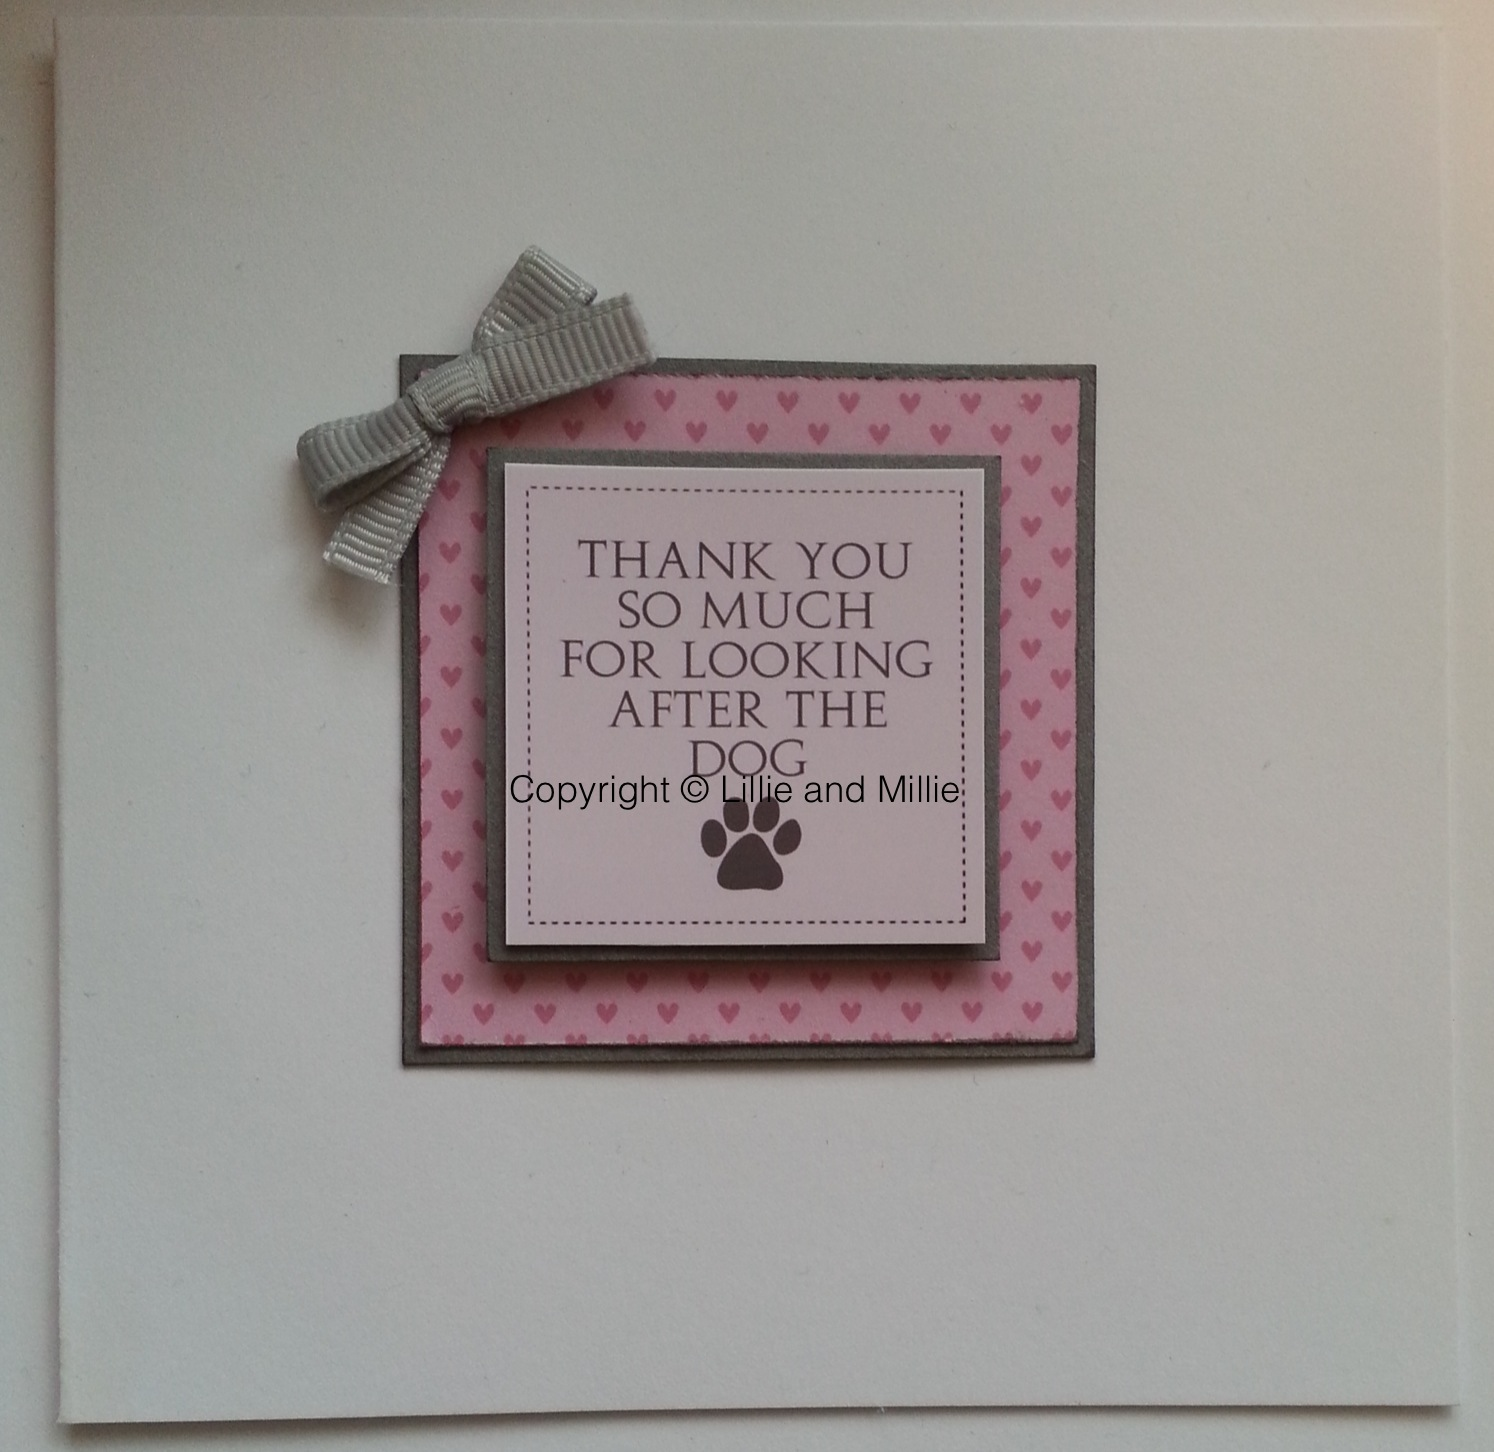 Handcrafted Handmade Dog Greetings Card